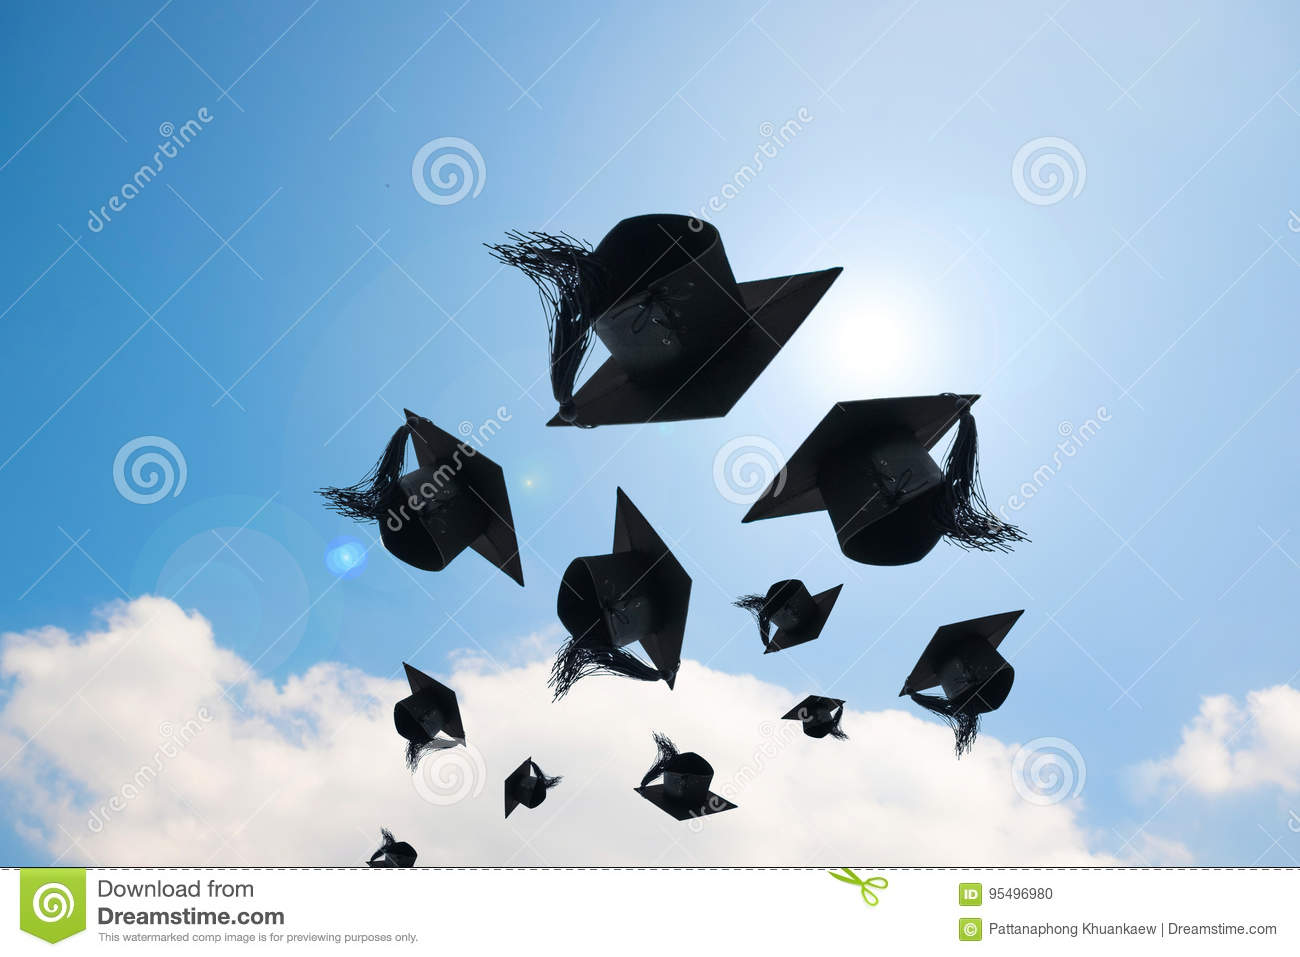 Graduation day, Images of graduation Caps or hat throwing in the